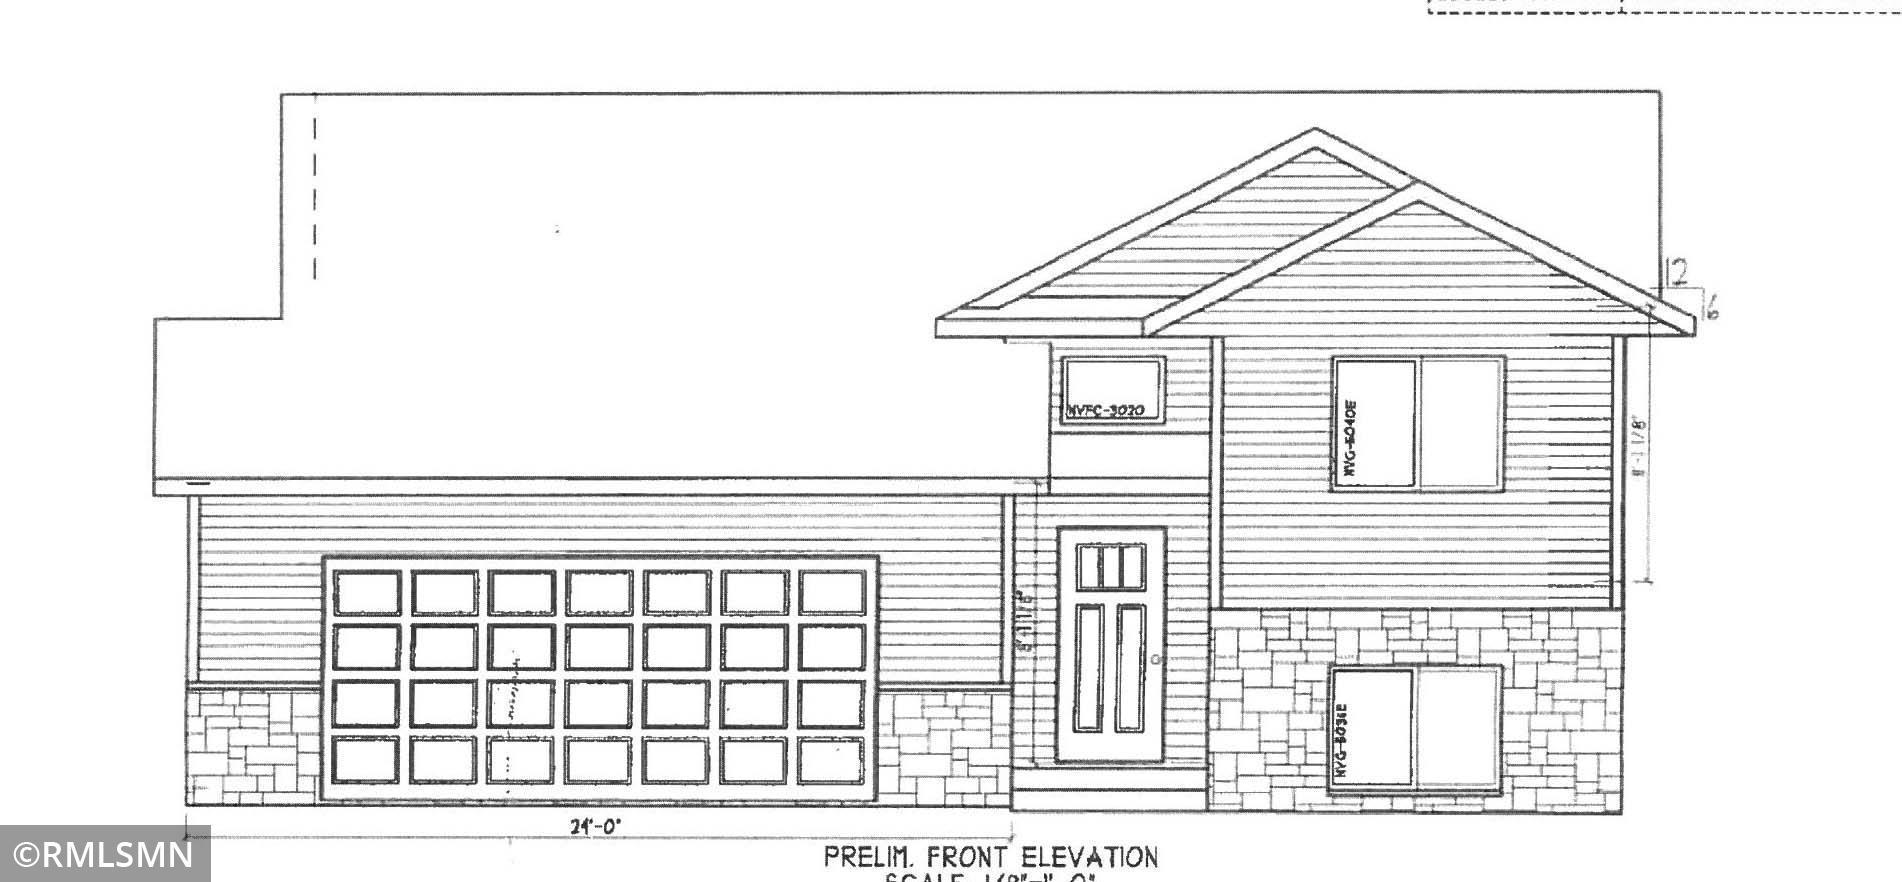 To be built Spring 2021! Attractive split level with 1170 square feet on a large city lot! Hardwood floors, tiled floors, granite countertops, raised panel custom cabinets, central air & steel siding!